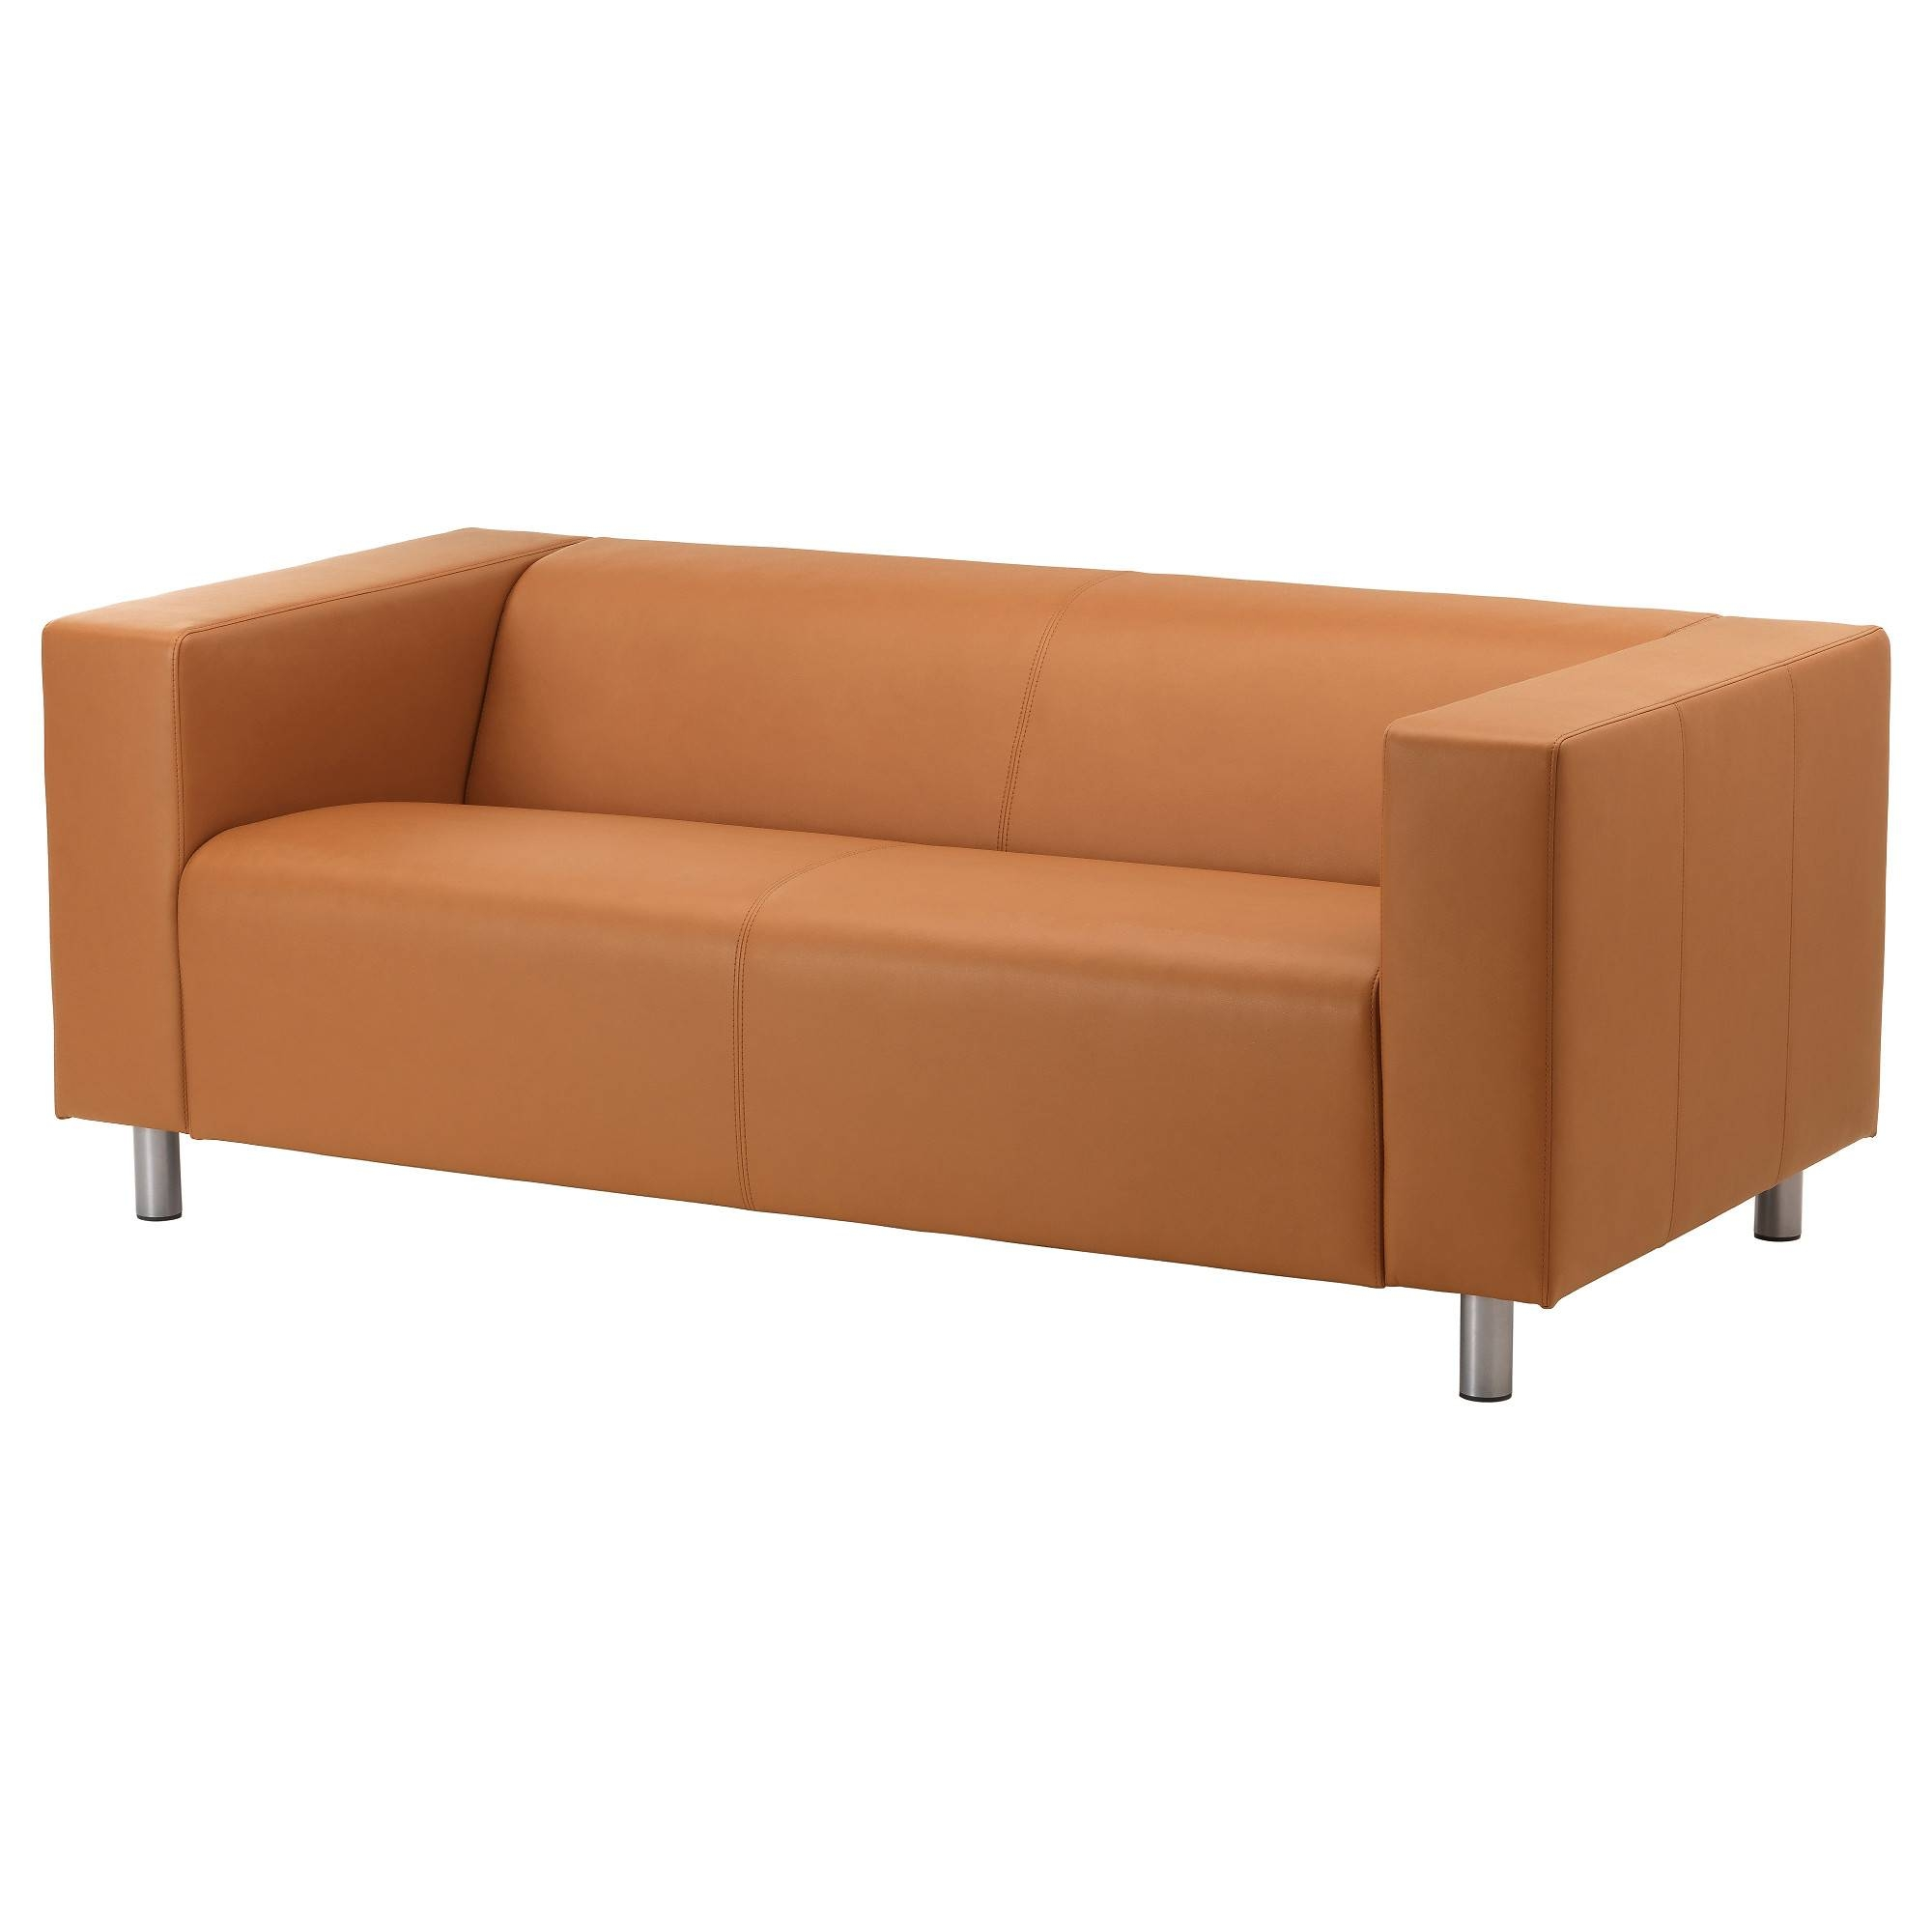 Leather & Faux Leather Couches, Chairs & Ottomans - Ikea within Orange Ikea Sofas (Image 23 of 30)